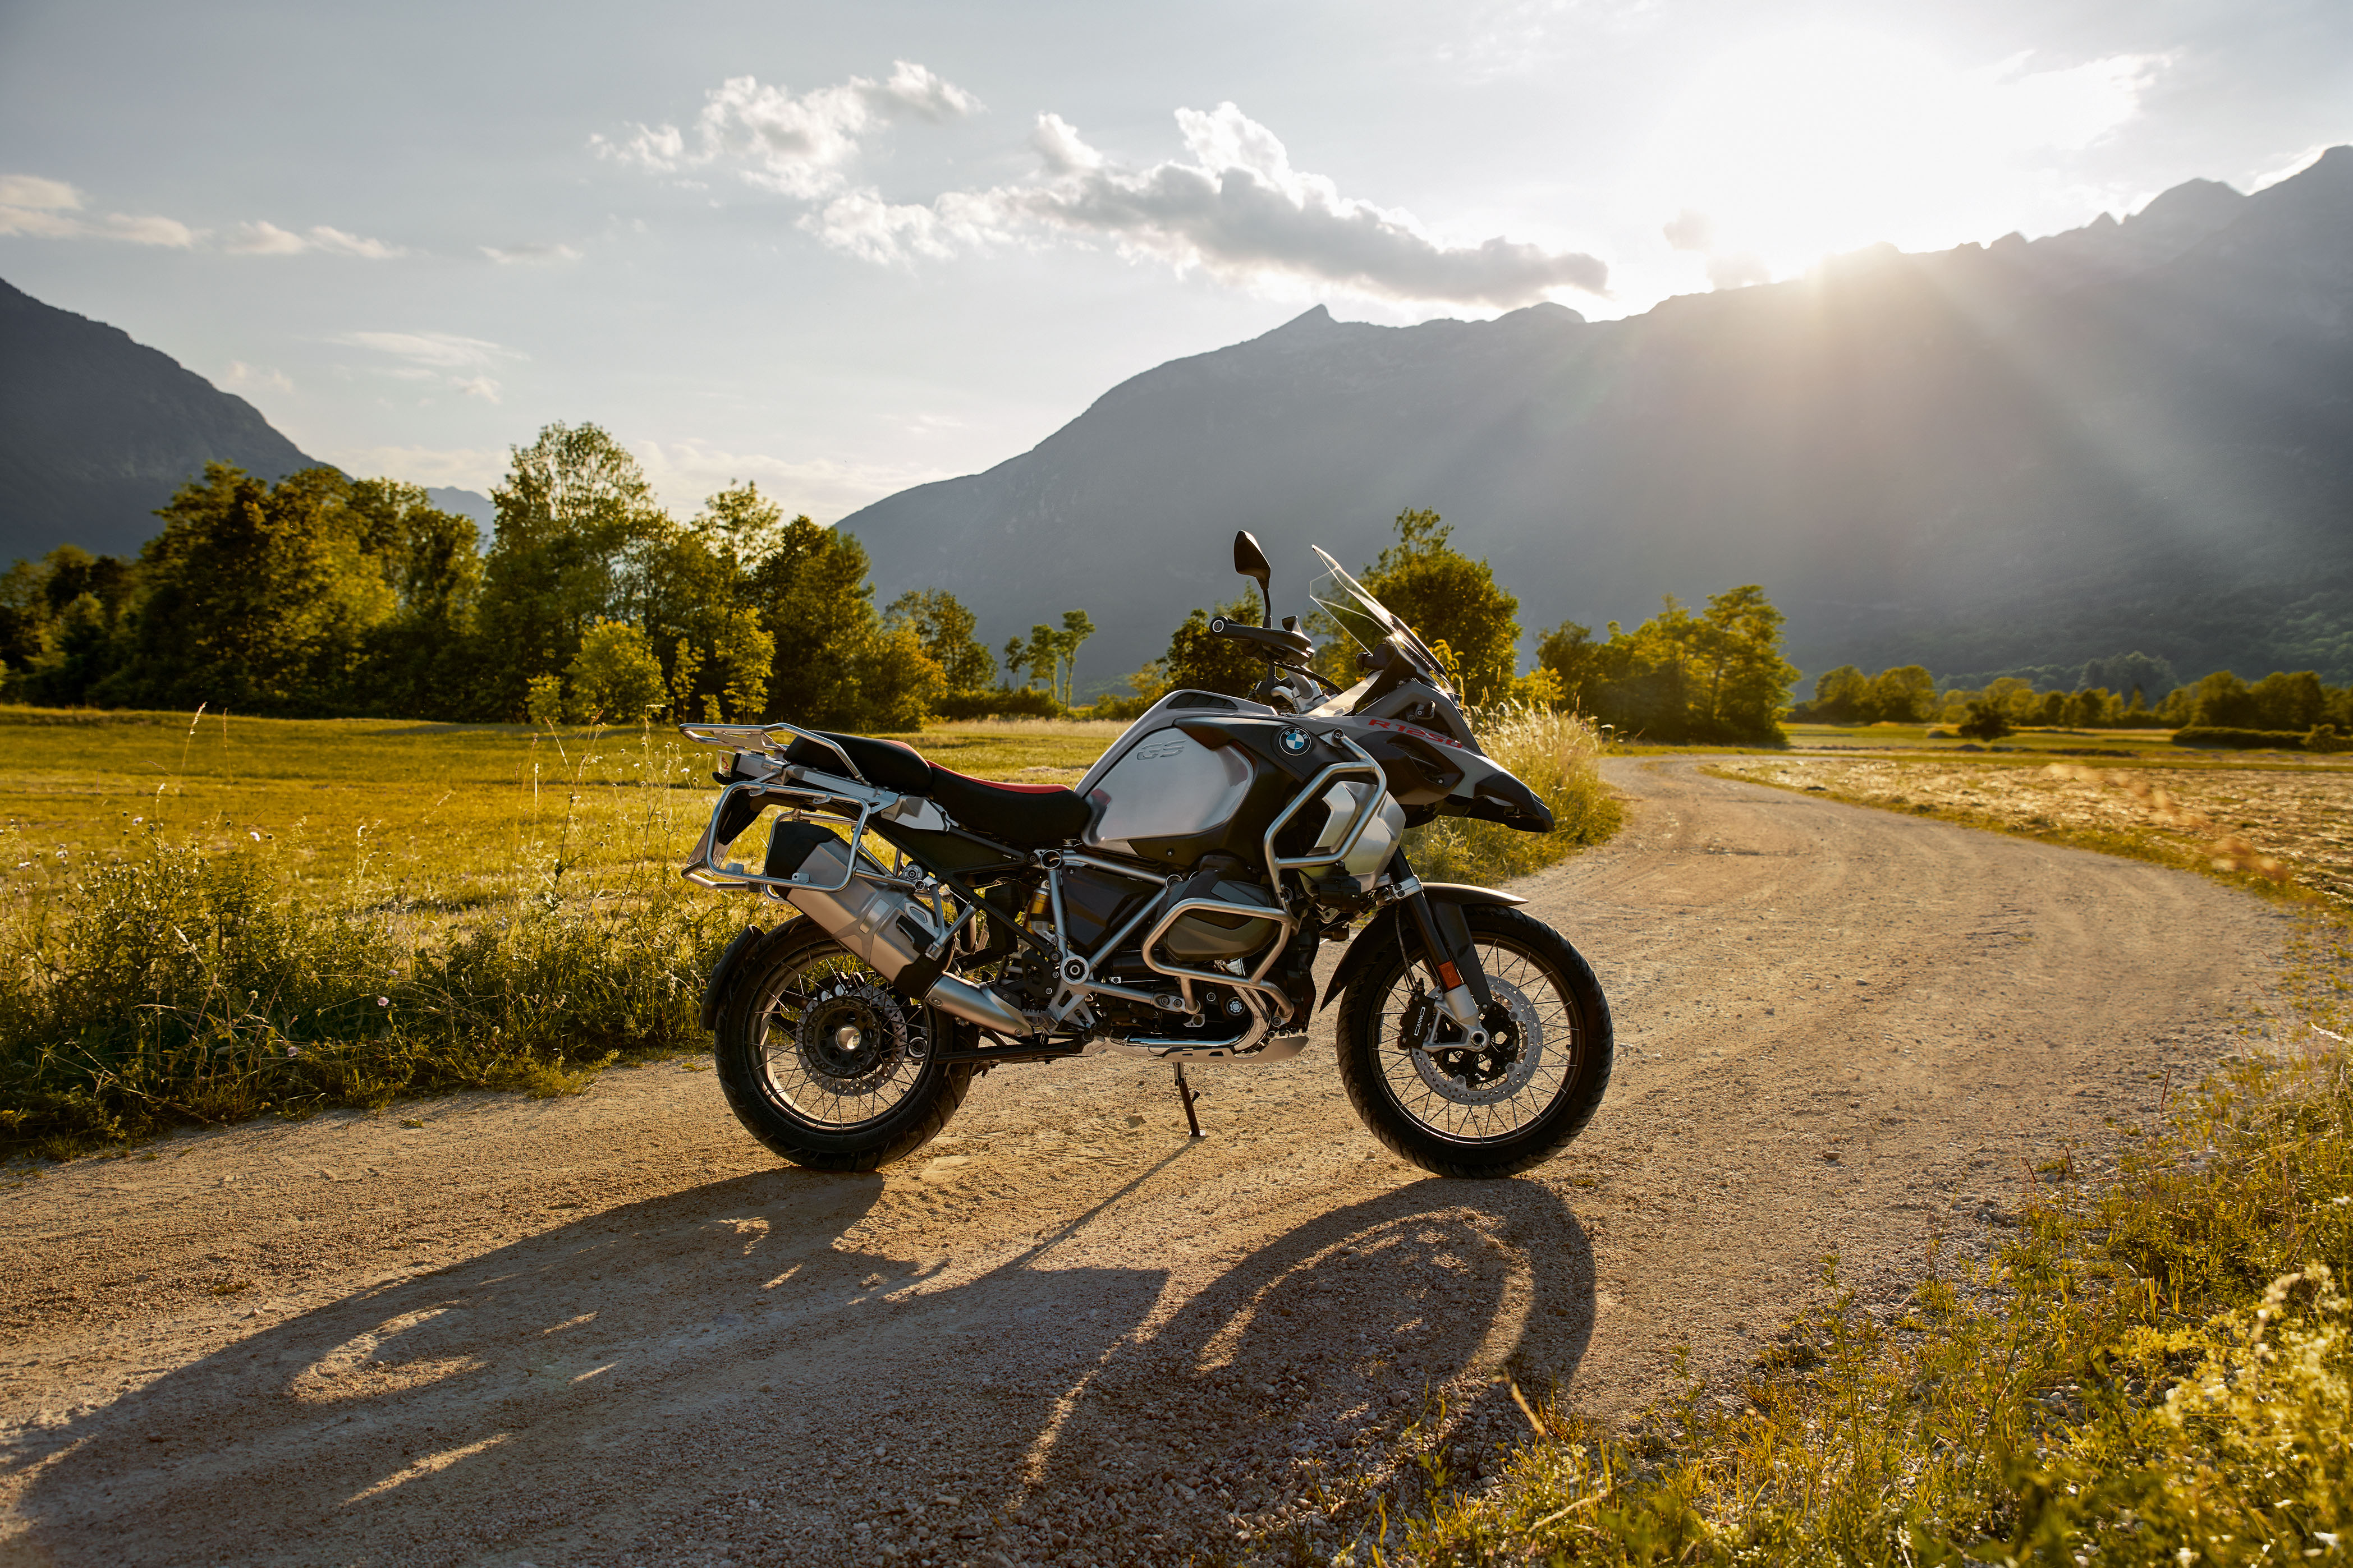 2019 BMW R 1250 GS launched in India at Rs 16.85 lakh, ex